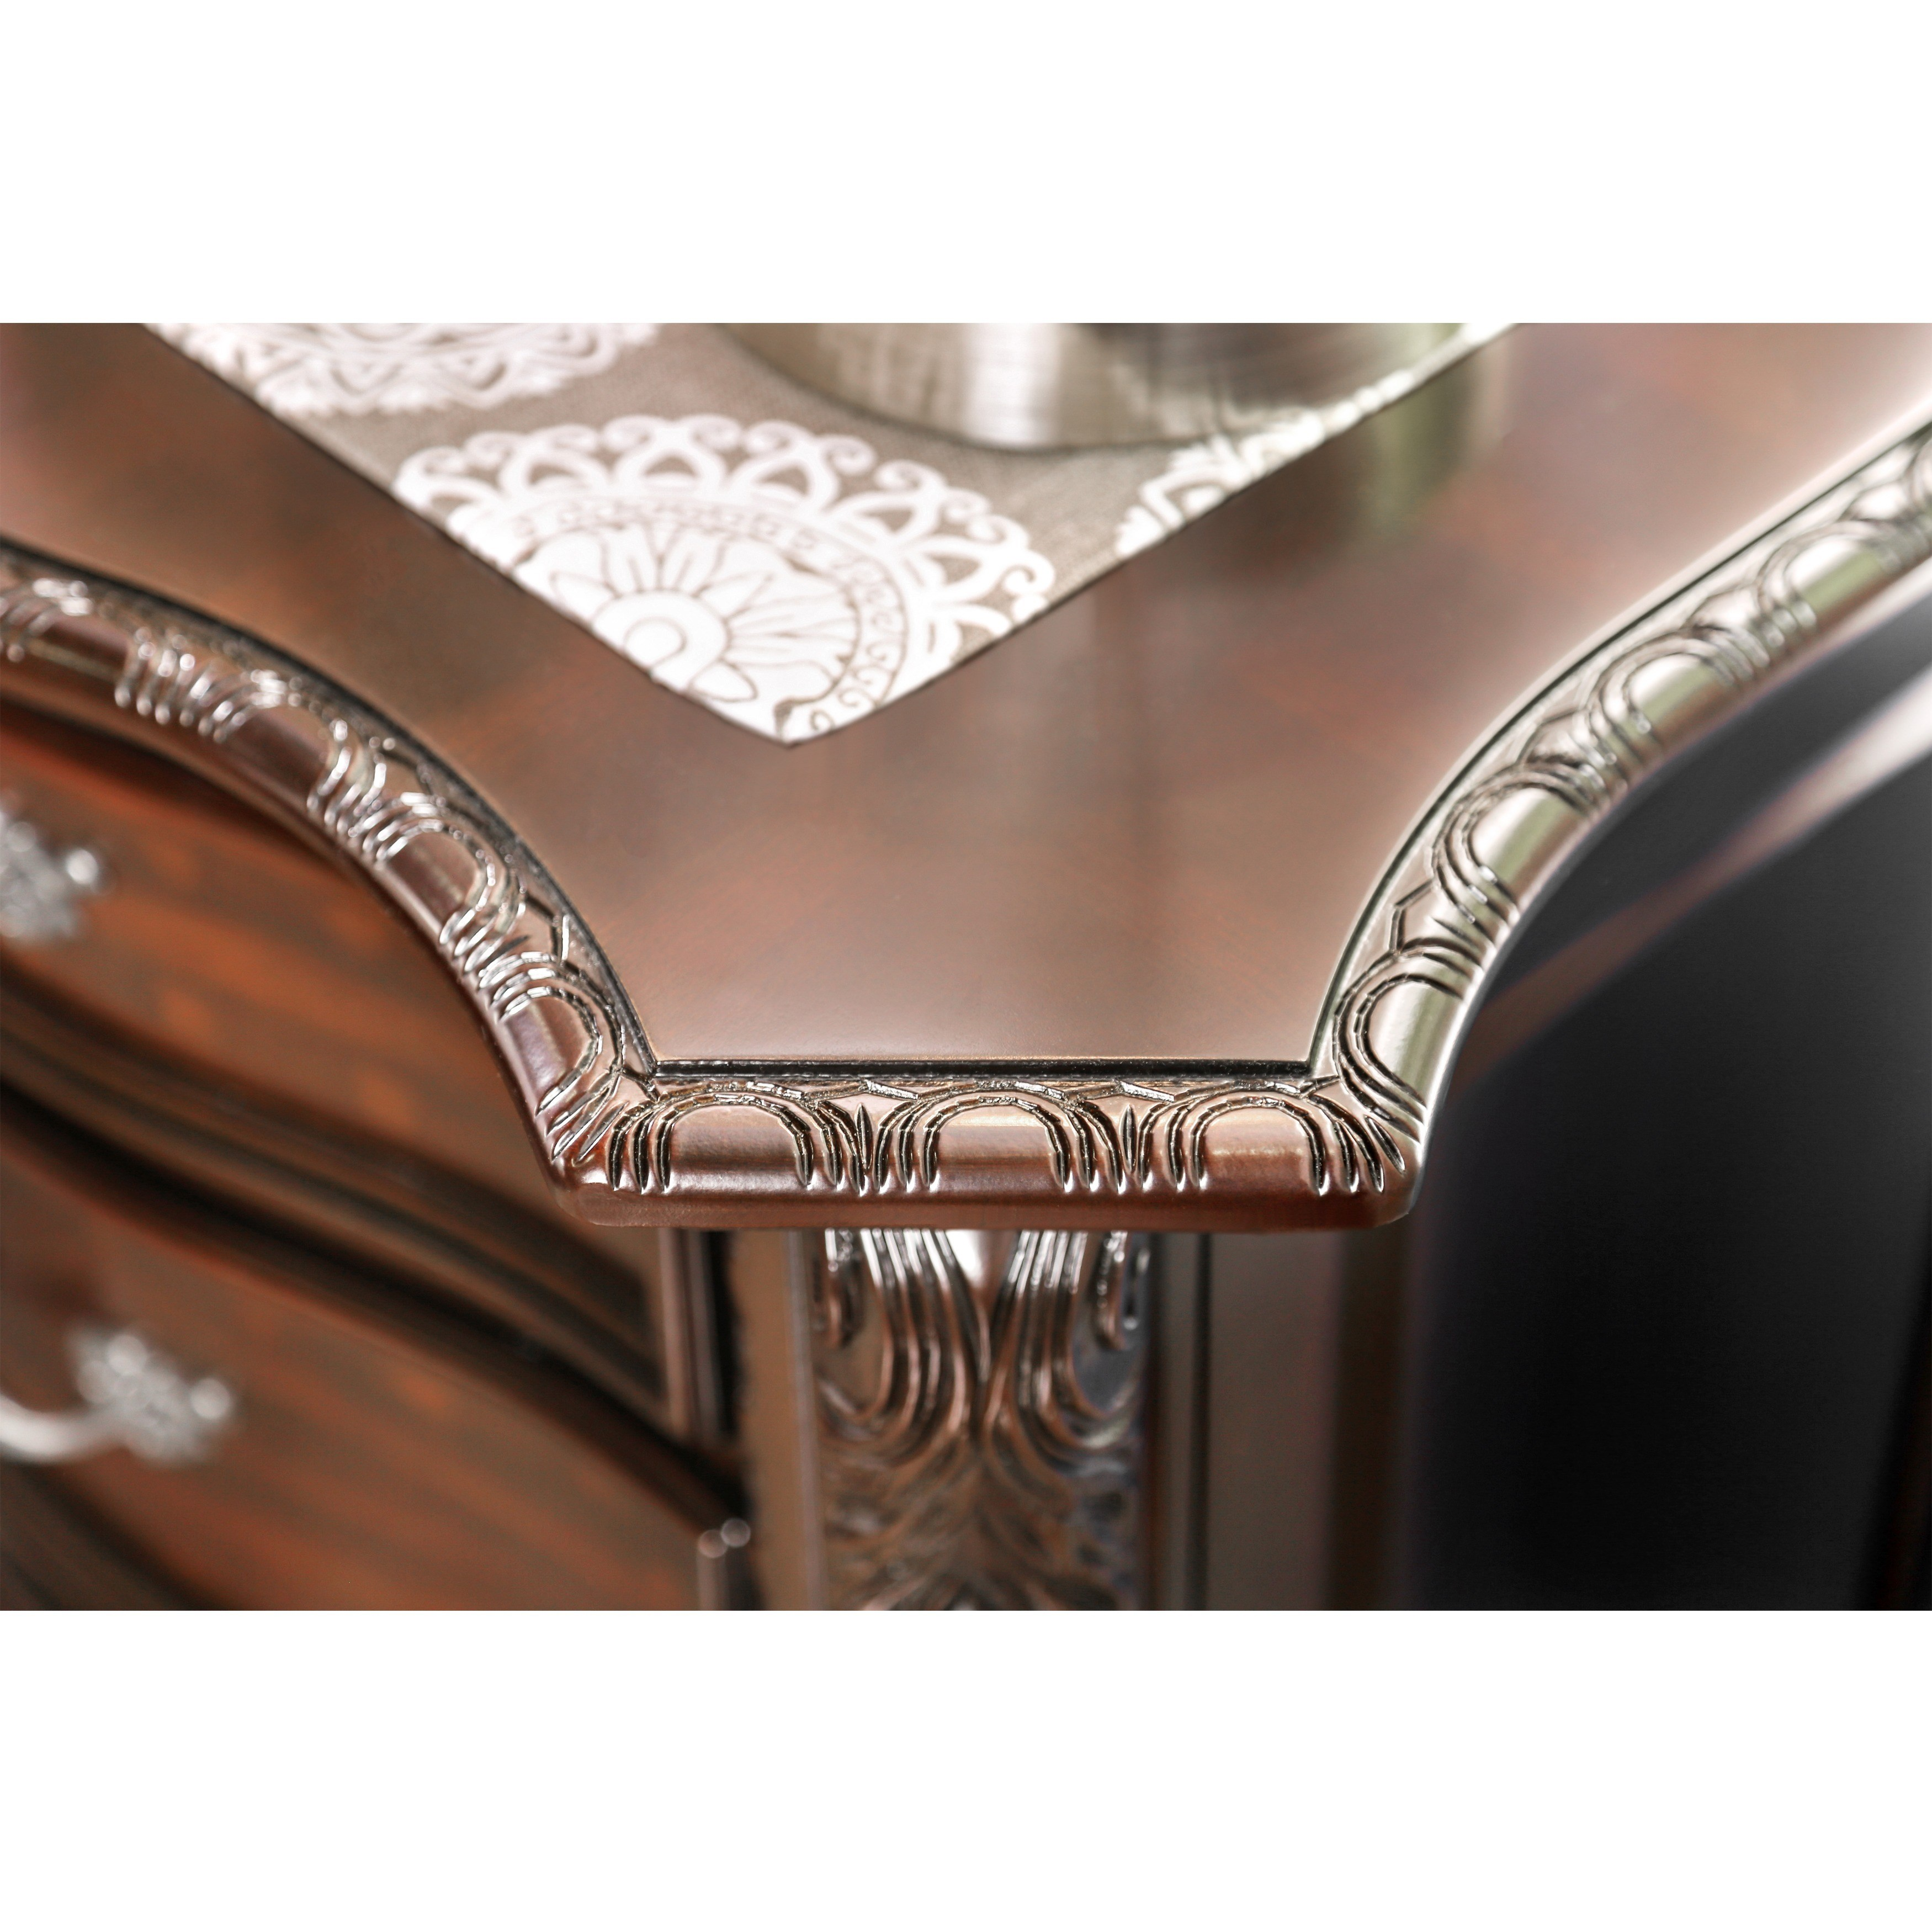 furniture america luxury brown cherry piece baroque style bedroom set accent table free shipping today patio covers canadian tire round iron coffee square cloth tablecloths